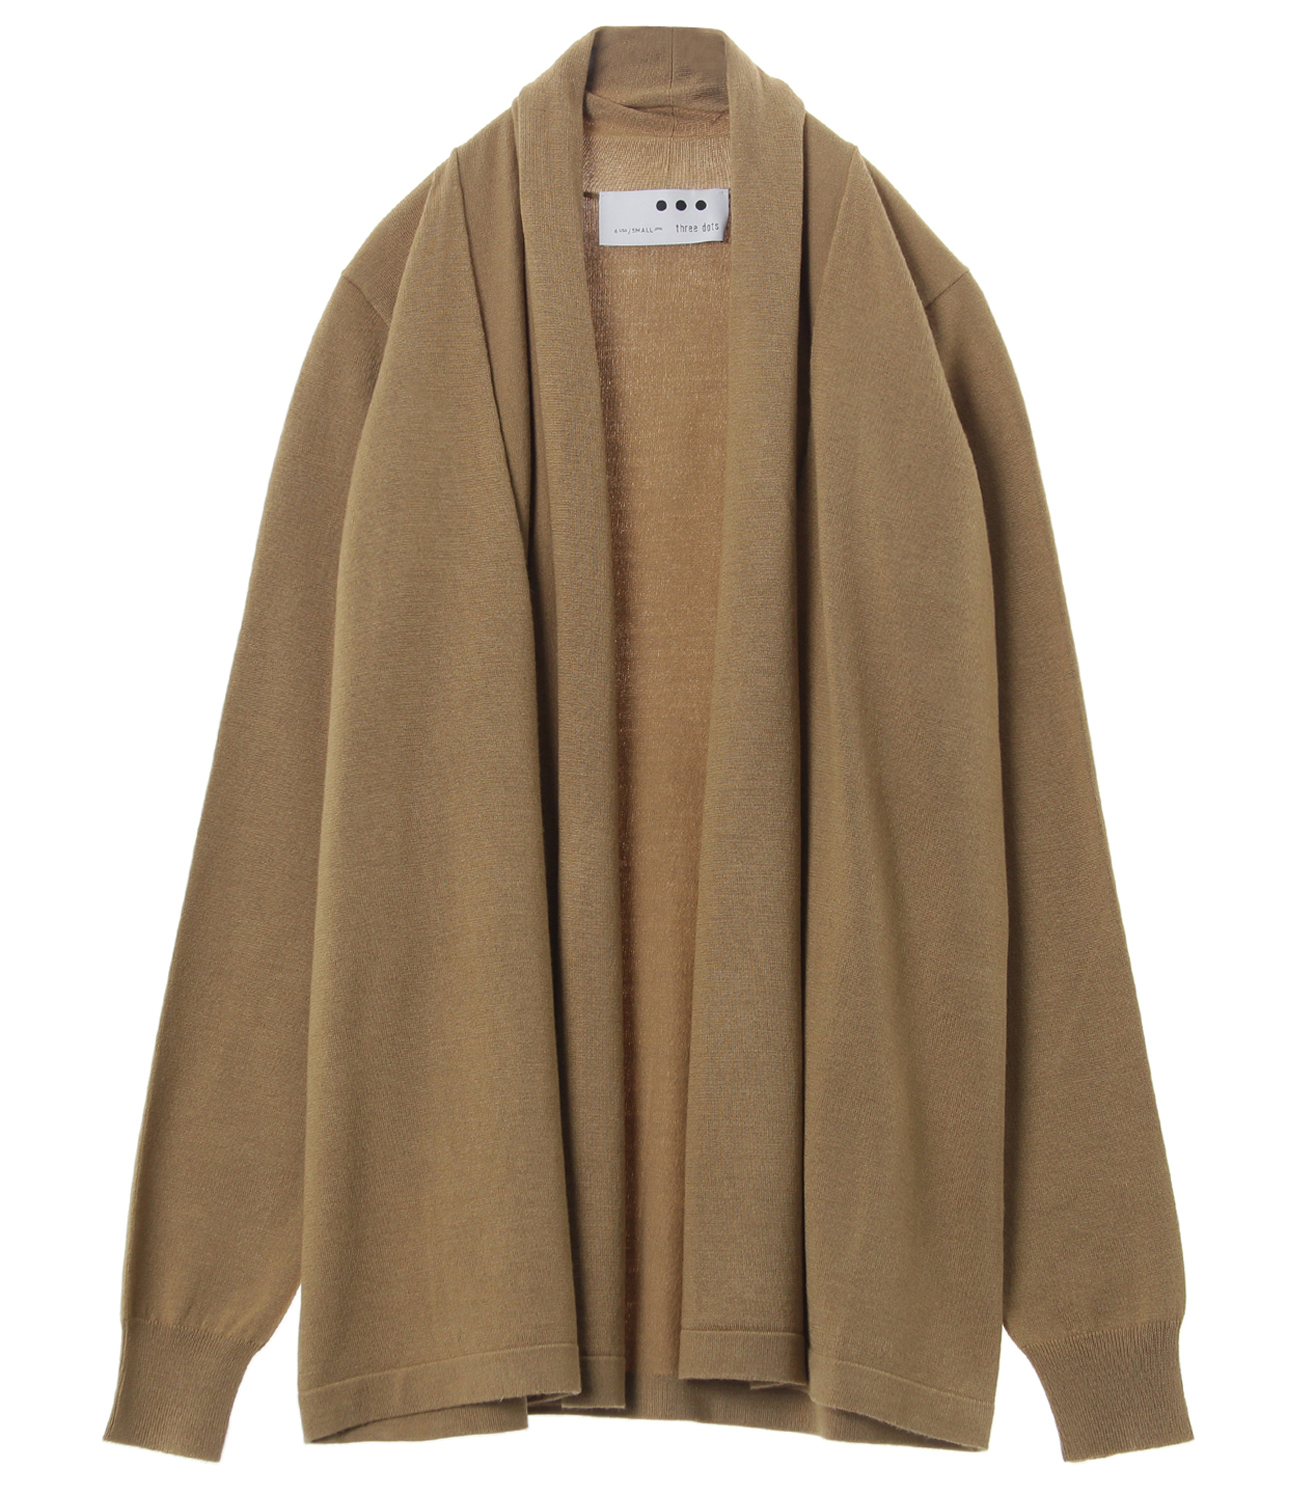 Washable silk l/s cardigan 詳細画像 beige 1